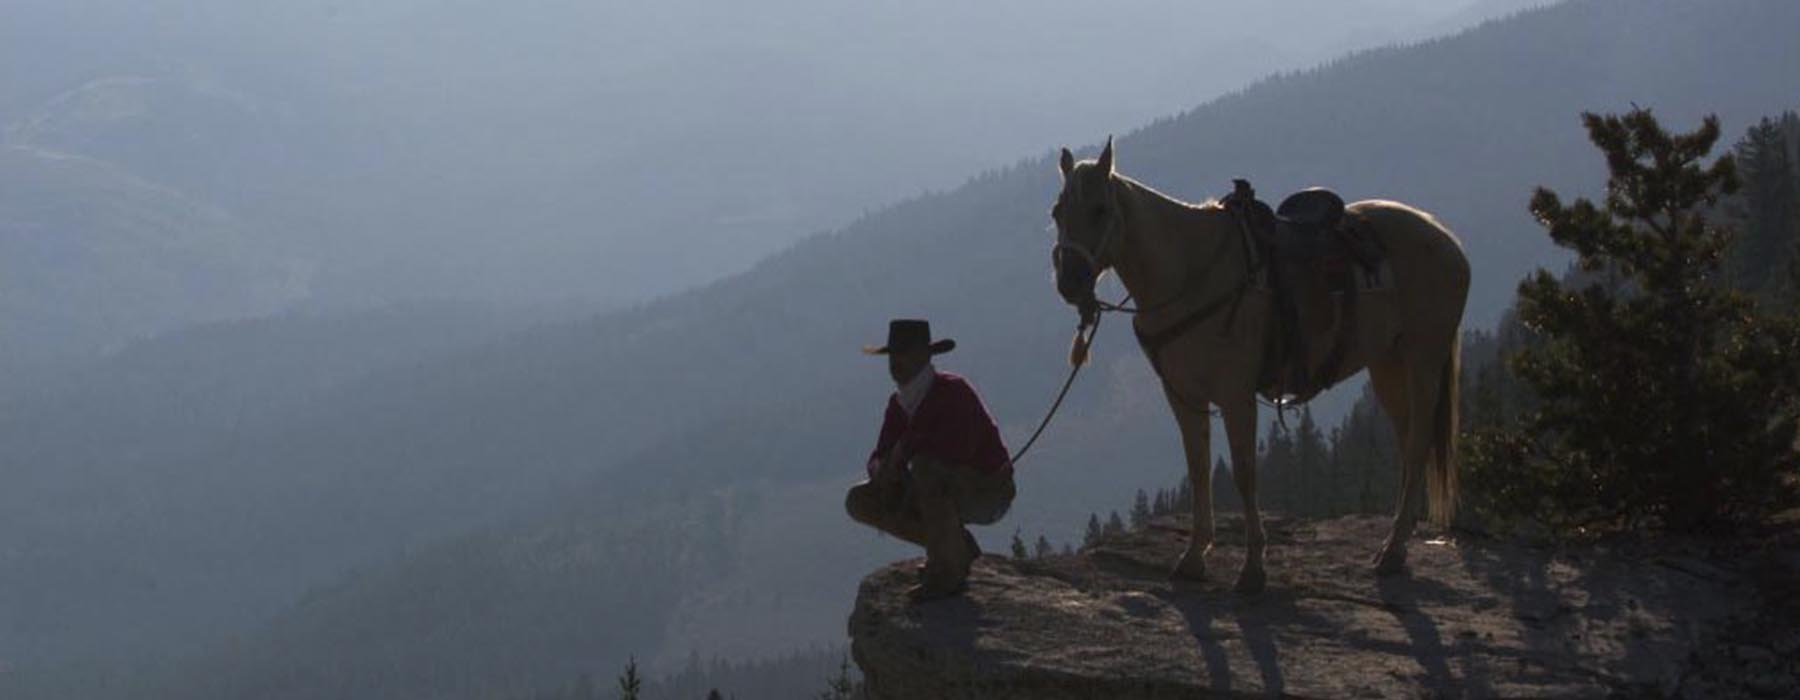 Cowboy on the overlook.